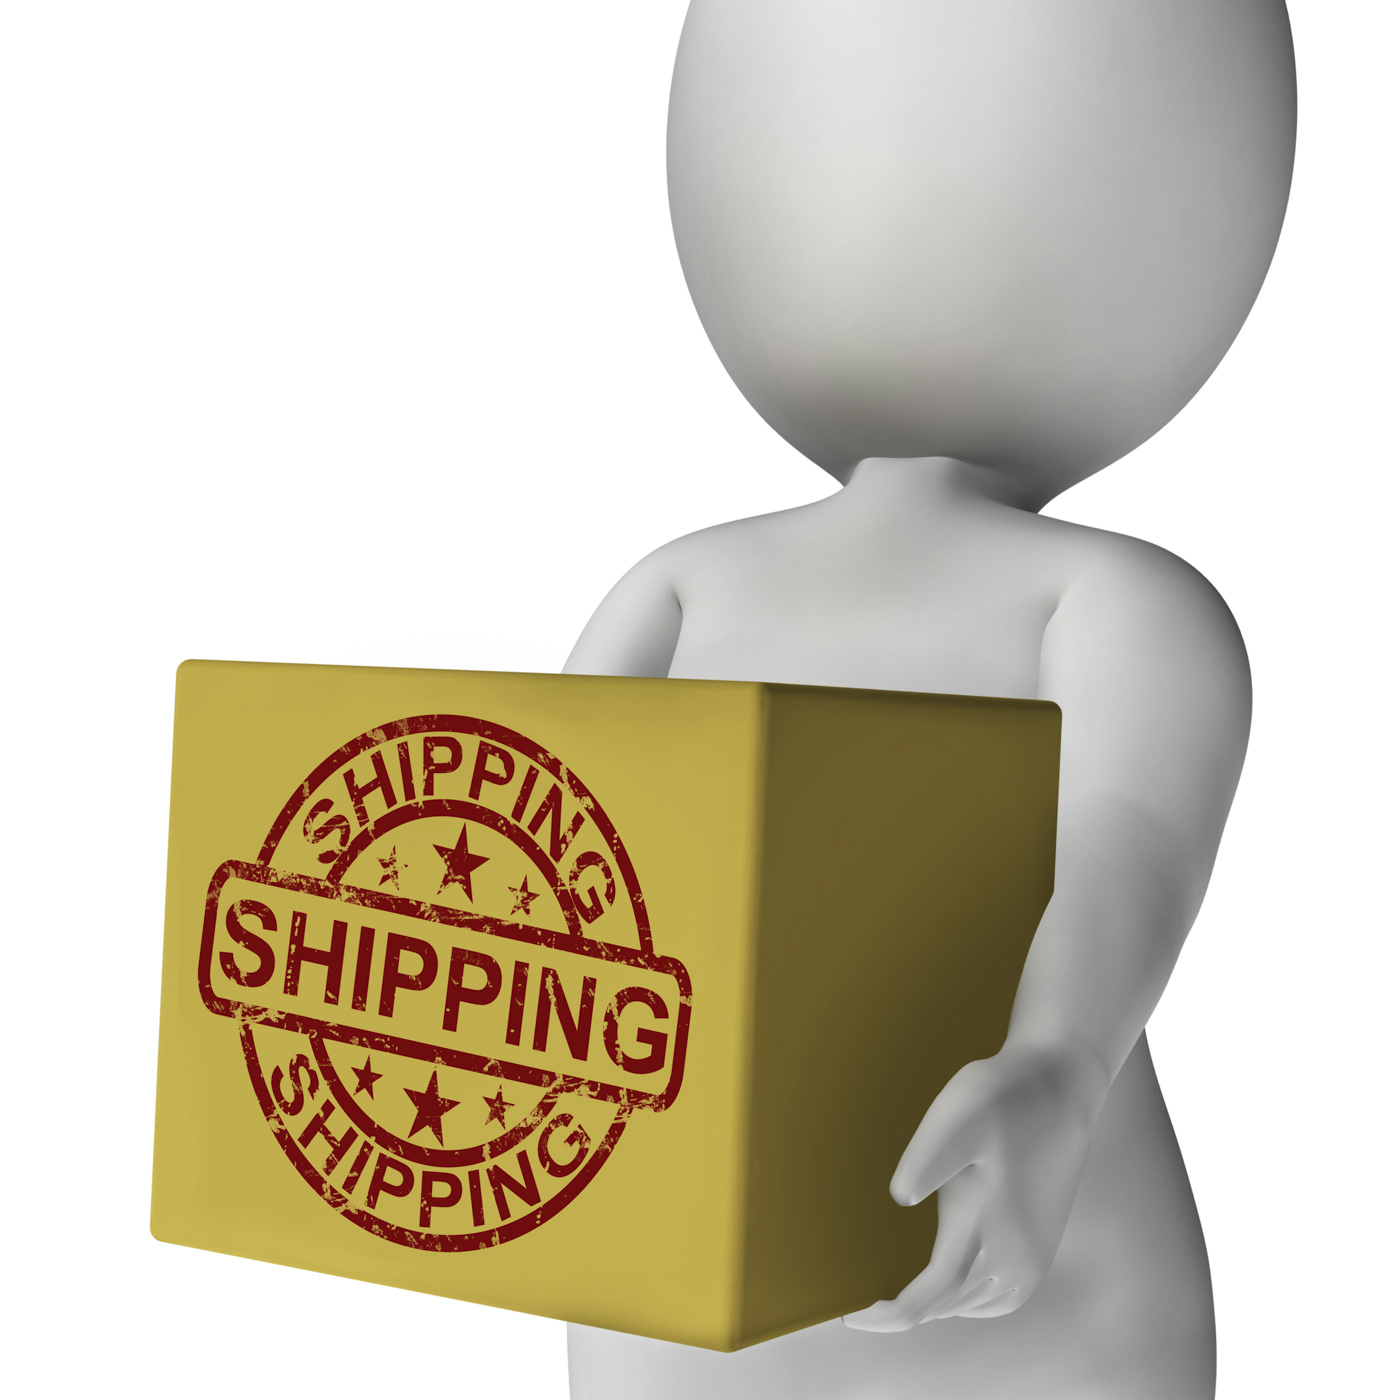 Shipping box means international transport of goods and products photo